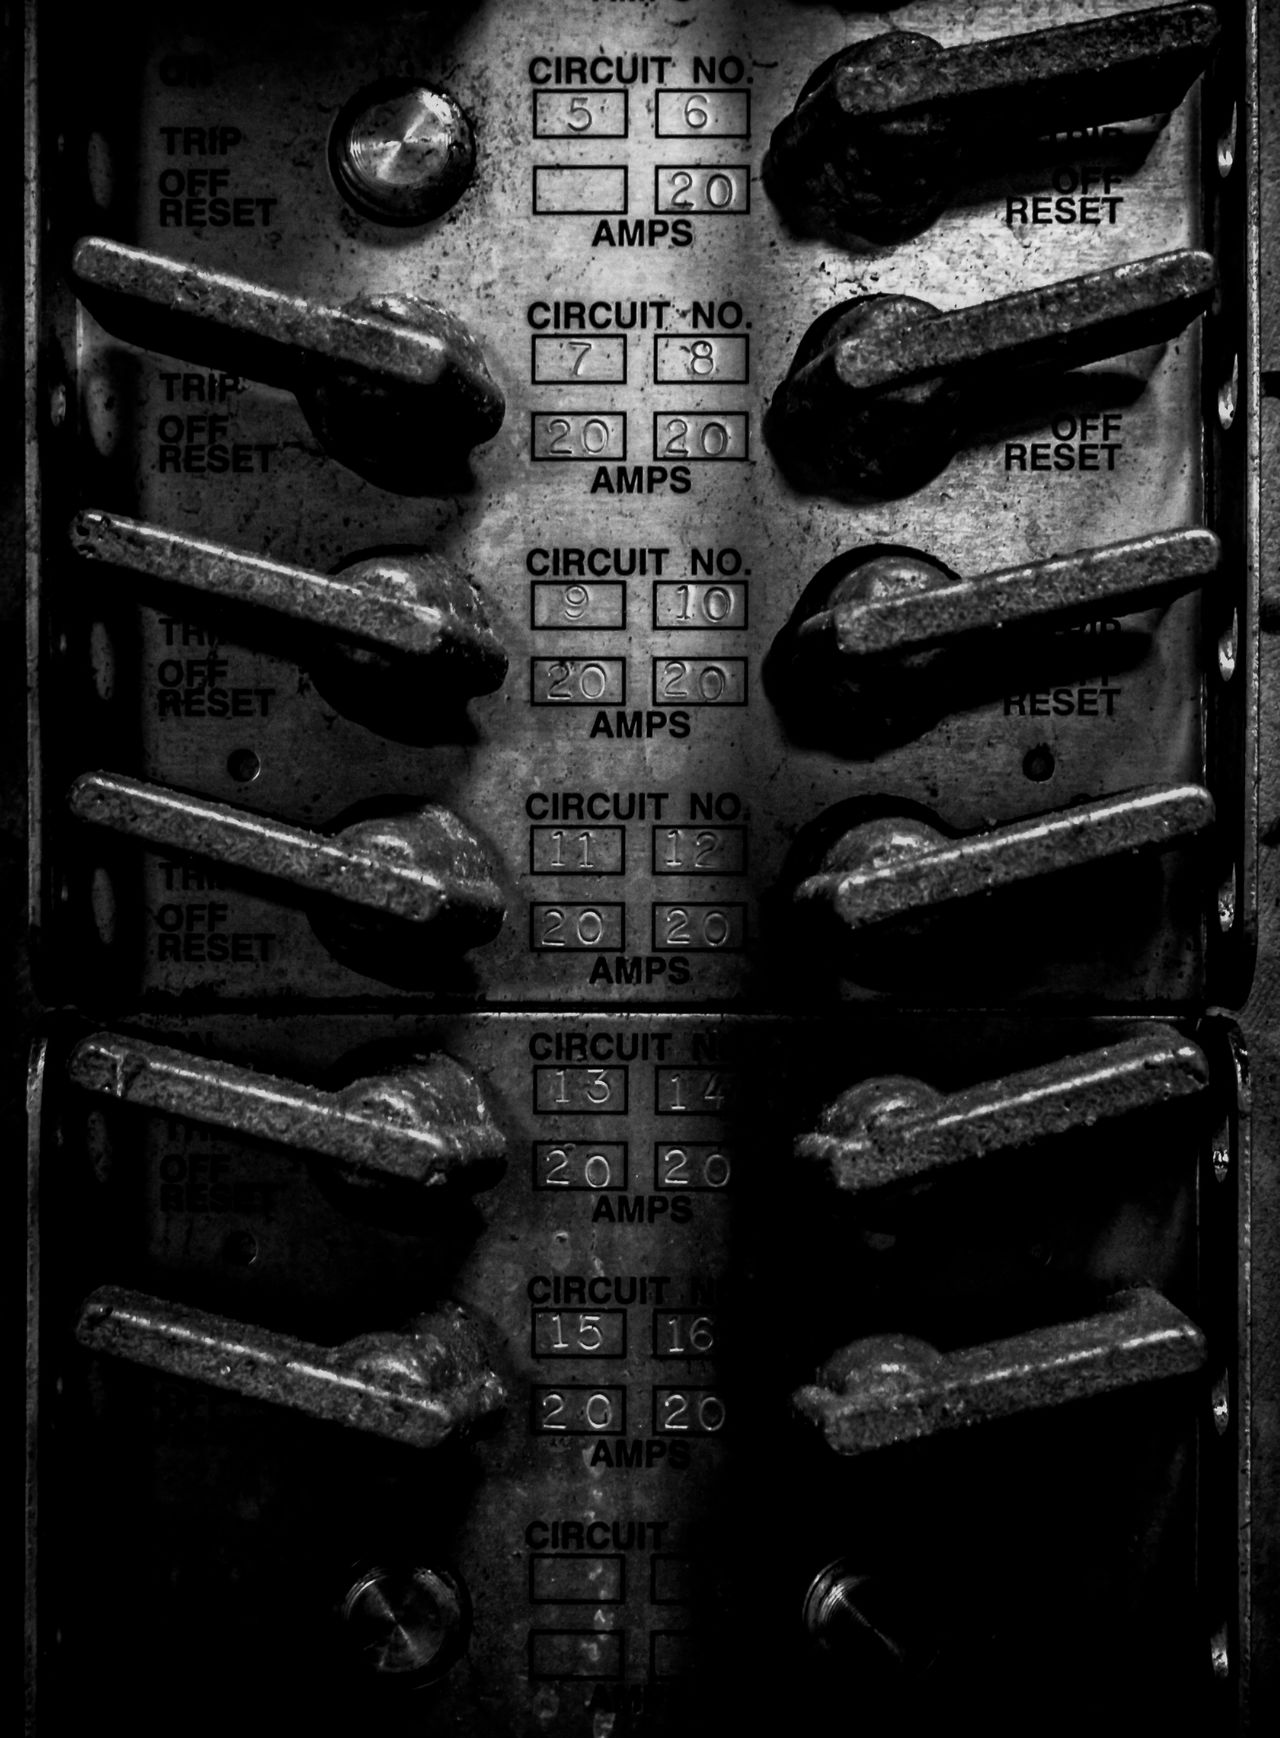 Industrial Circuit Breakers Black & White Black And White Black And White Photography Blackandwhite Blackandwhite Photography Circuit Breaker Close-up Fine Art Fine Art Photography Fineart_photobw Gages Greyscale Gritty Indoors  James Aiken James Aiken Photography Metal Monochromatic Monochrome Monochrome Photography No People Numbers Repeating Patterns Repetition Switches